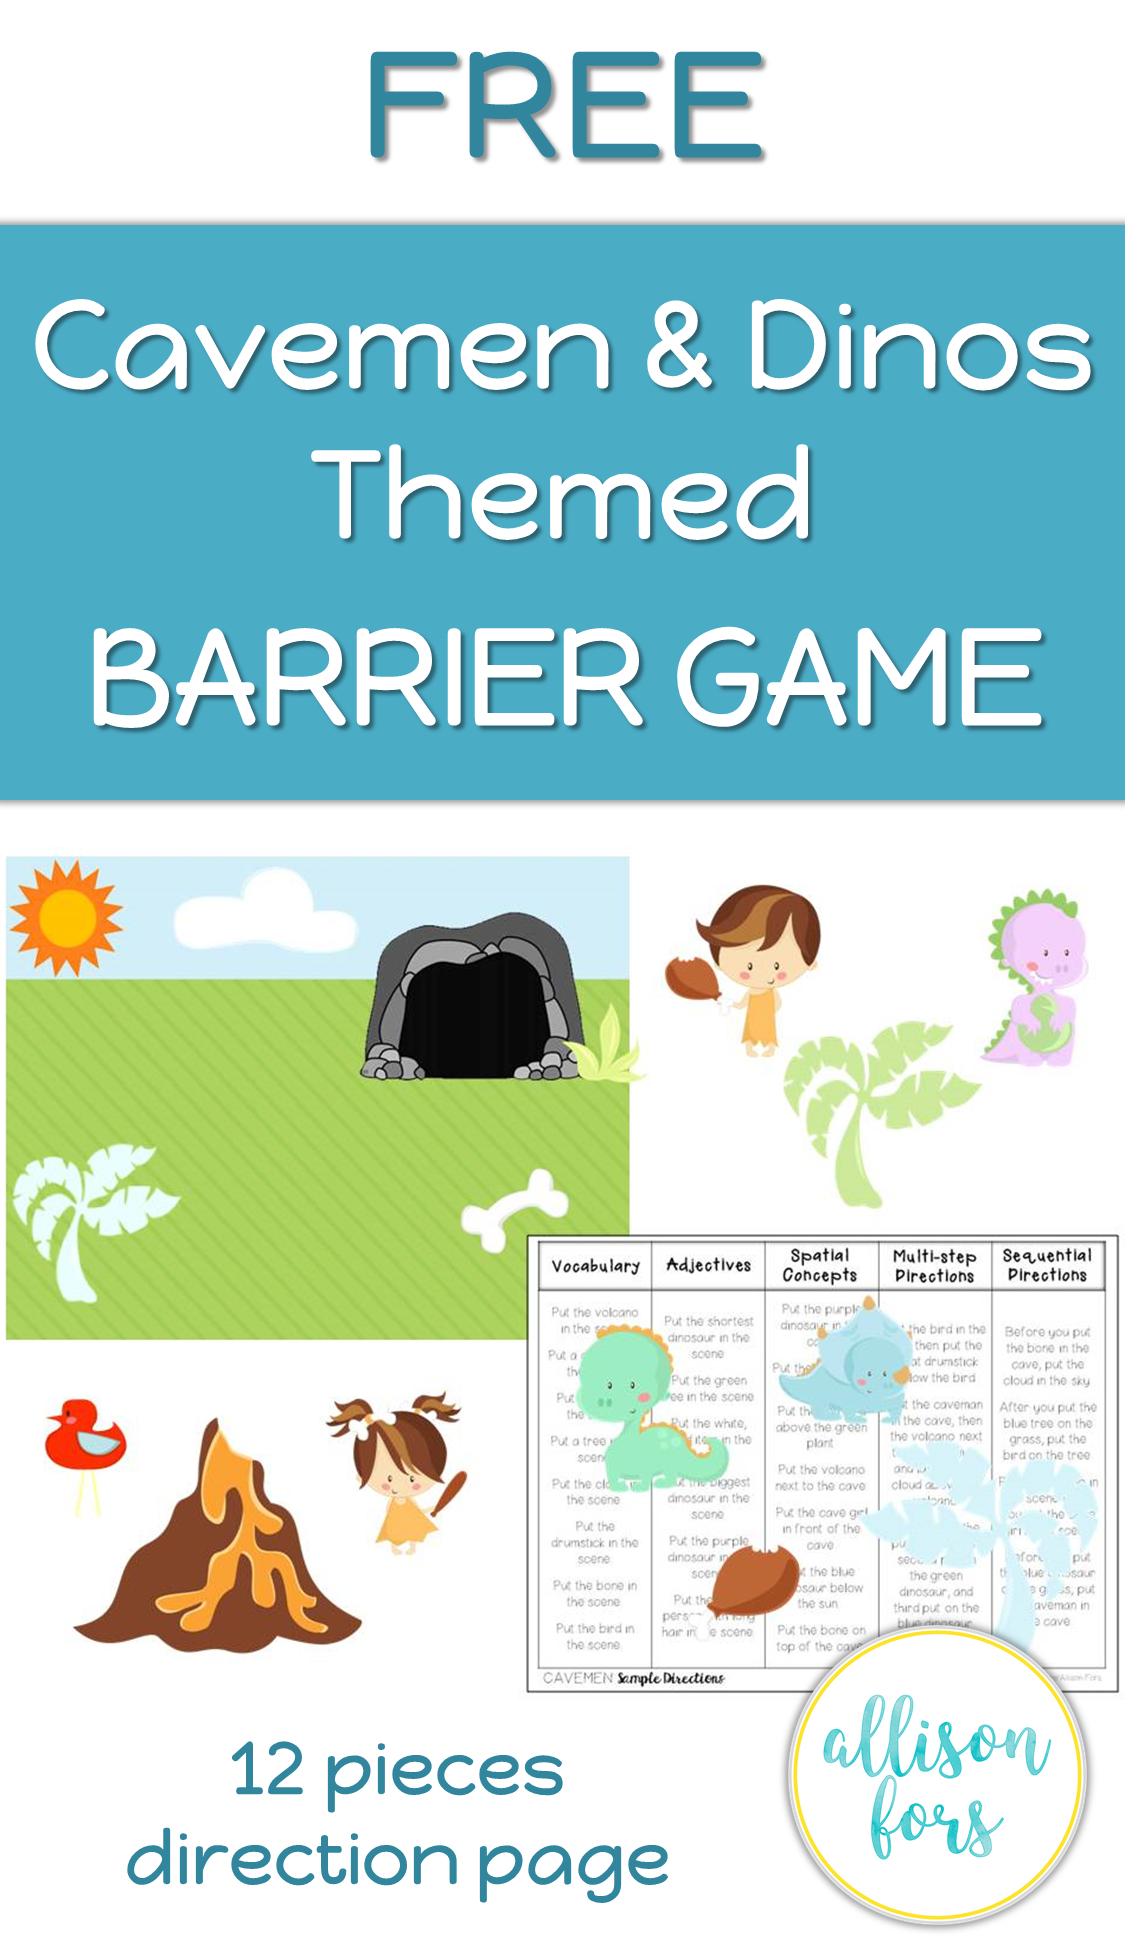 Free Cavemen And Dinos Themed Barrier Game Speech Therapy | Printable Barrier Games Worksheets